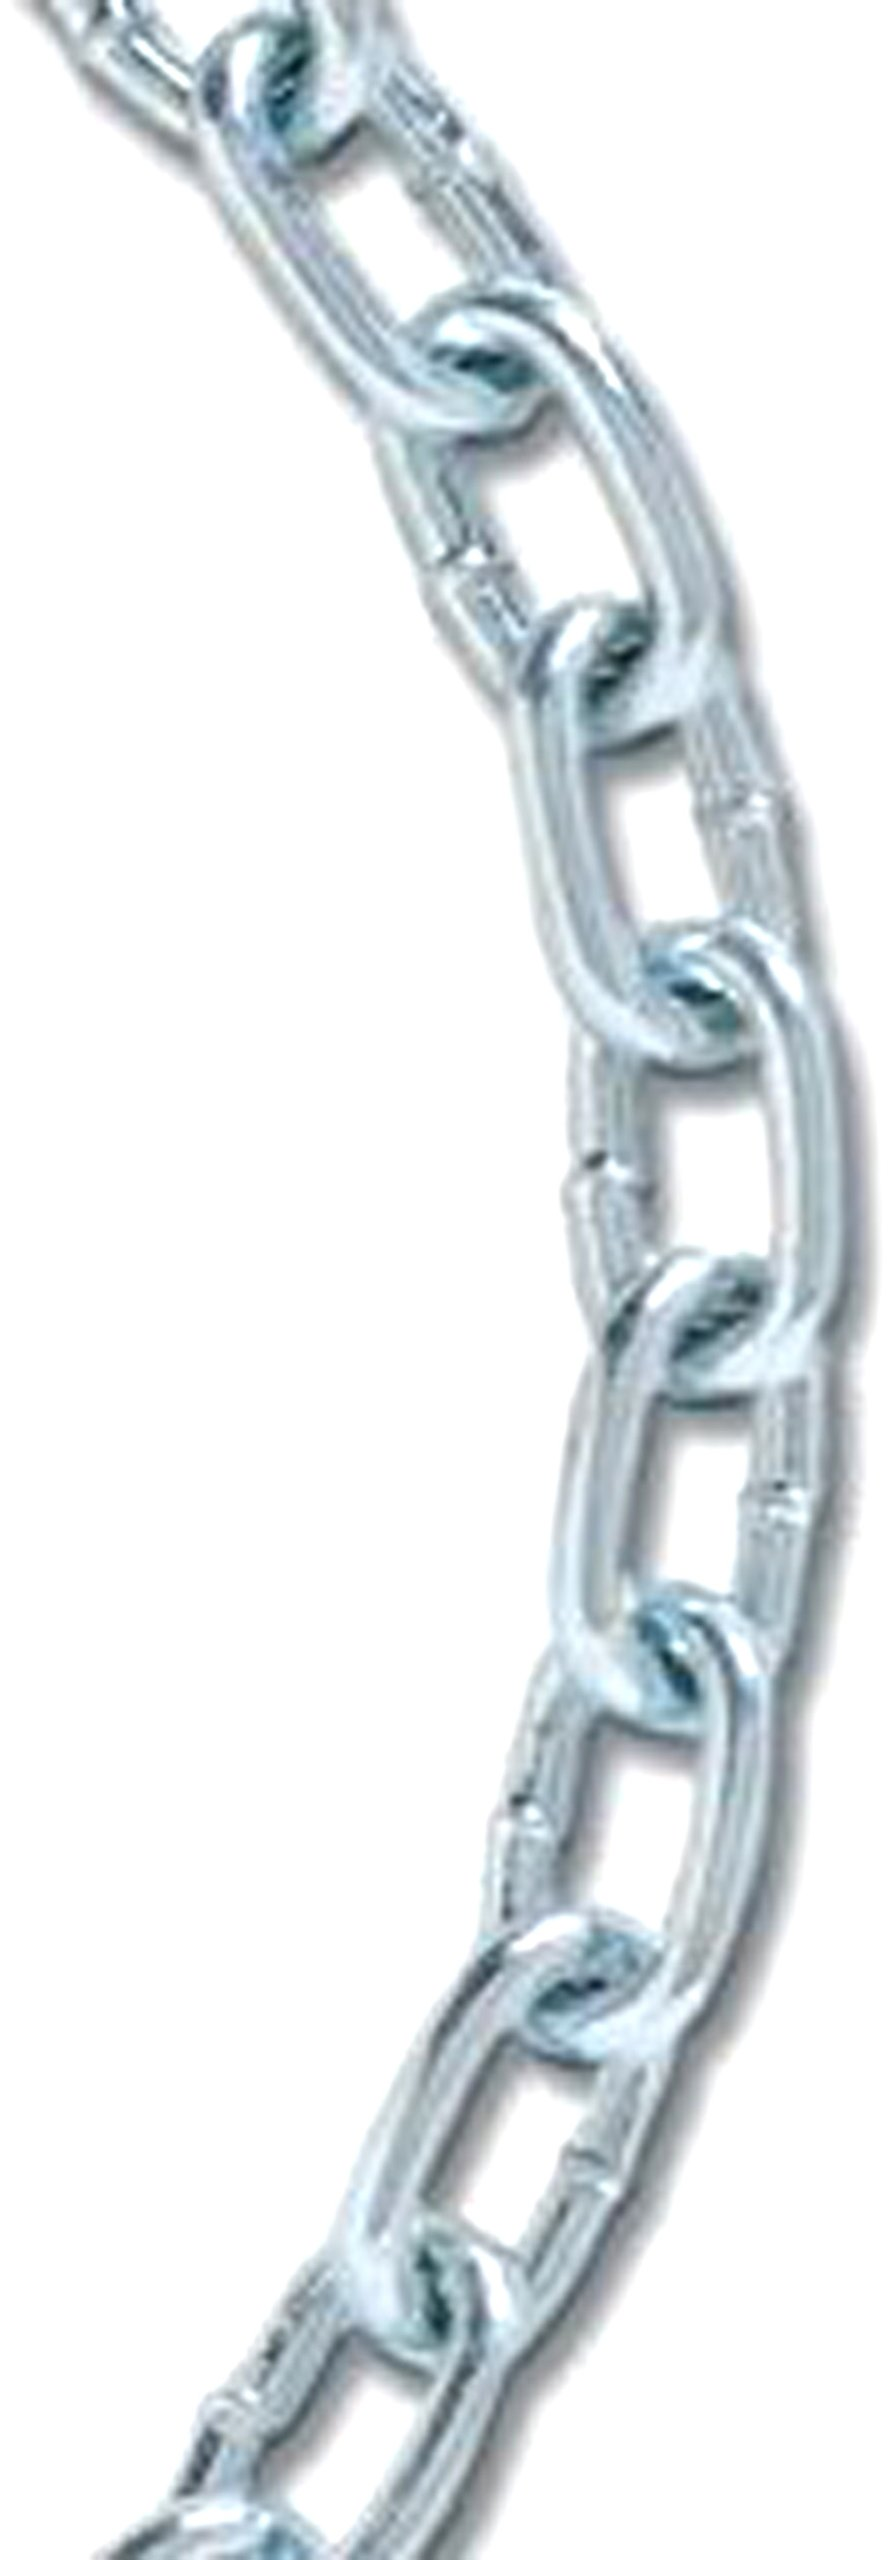 Koch 713876 No.4 by 100-Feet Machine Straight Chain, Zinc Plated by Koch